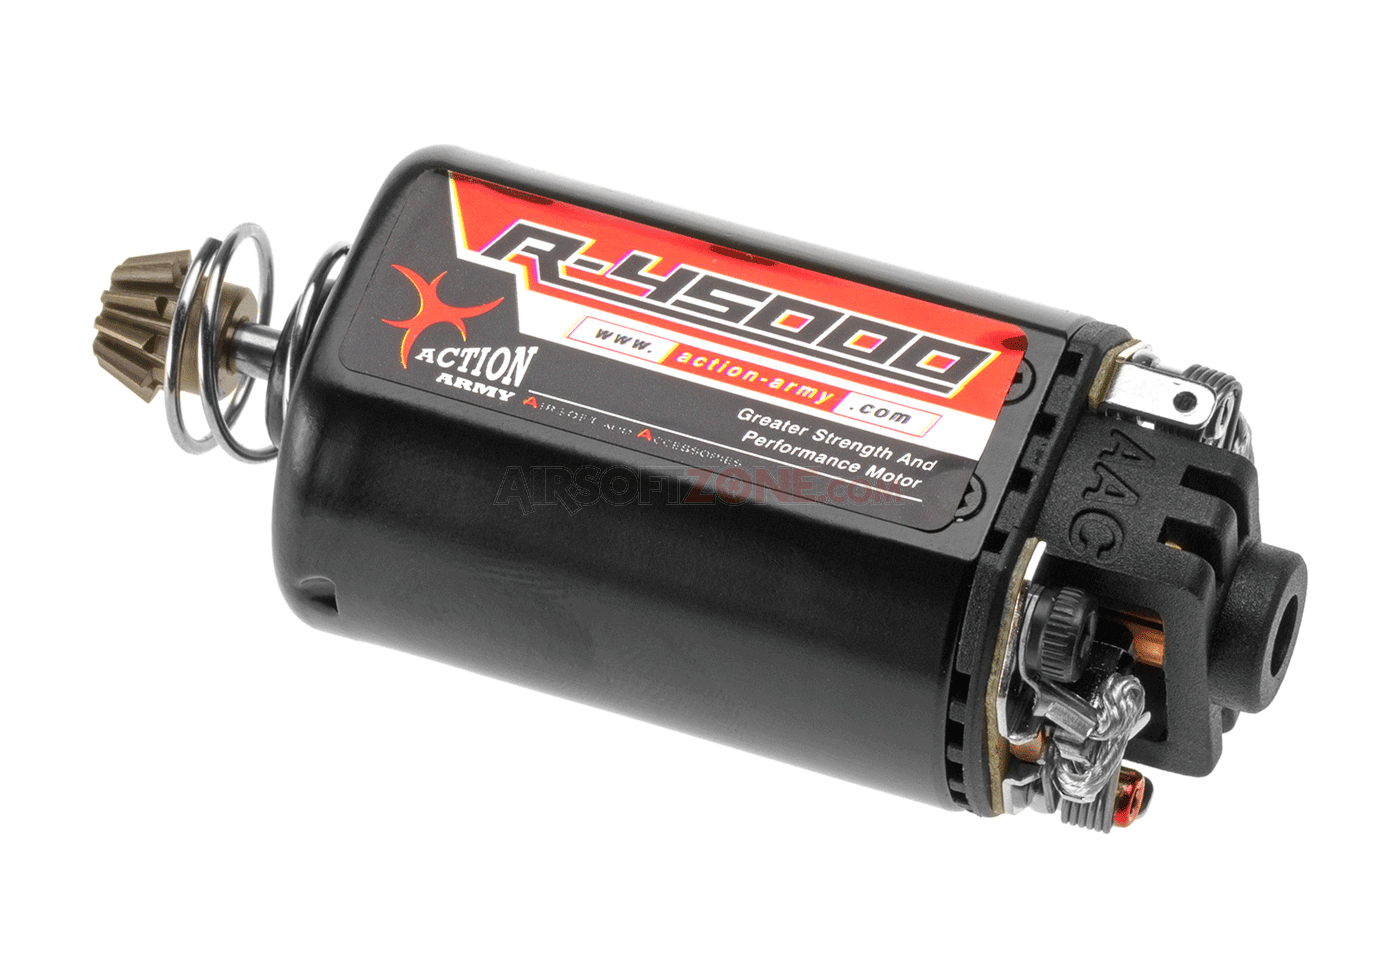 45000r Infinity Motor Short Axis Action Army Motoren